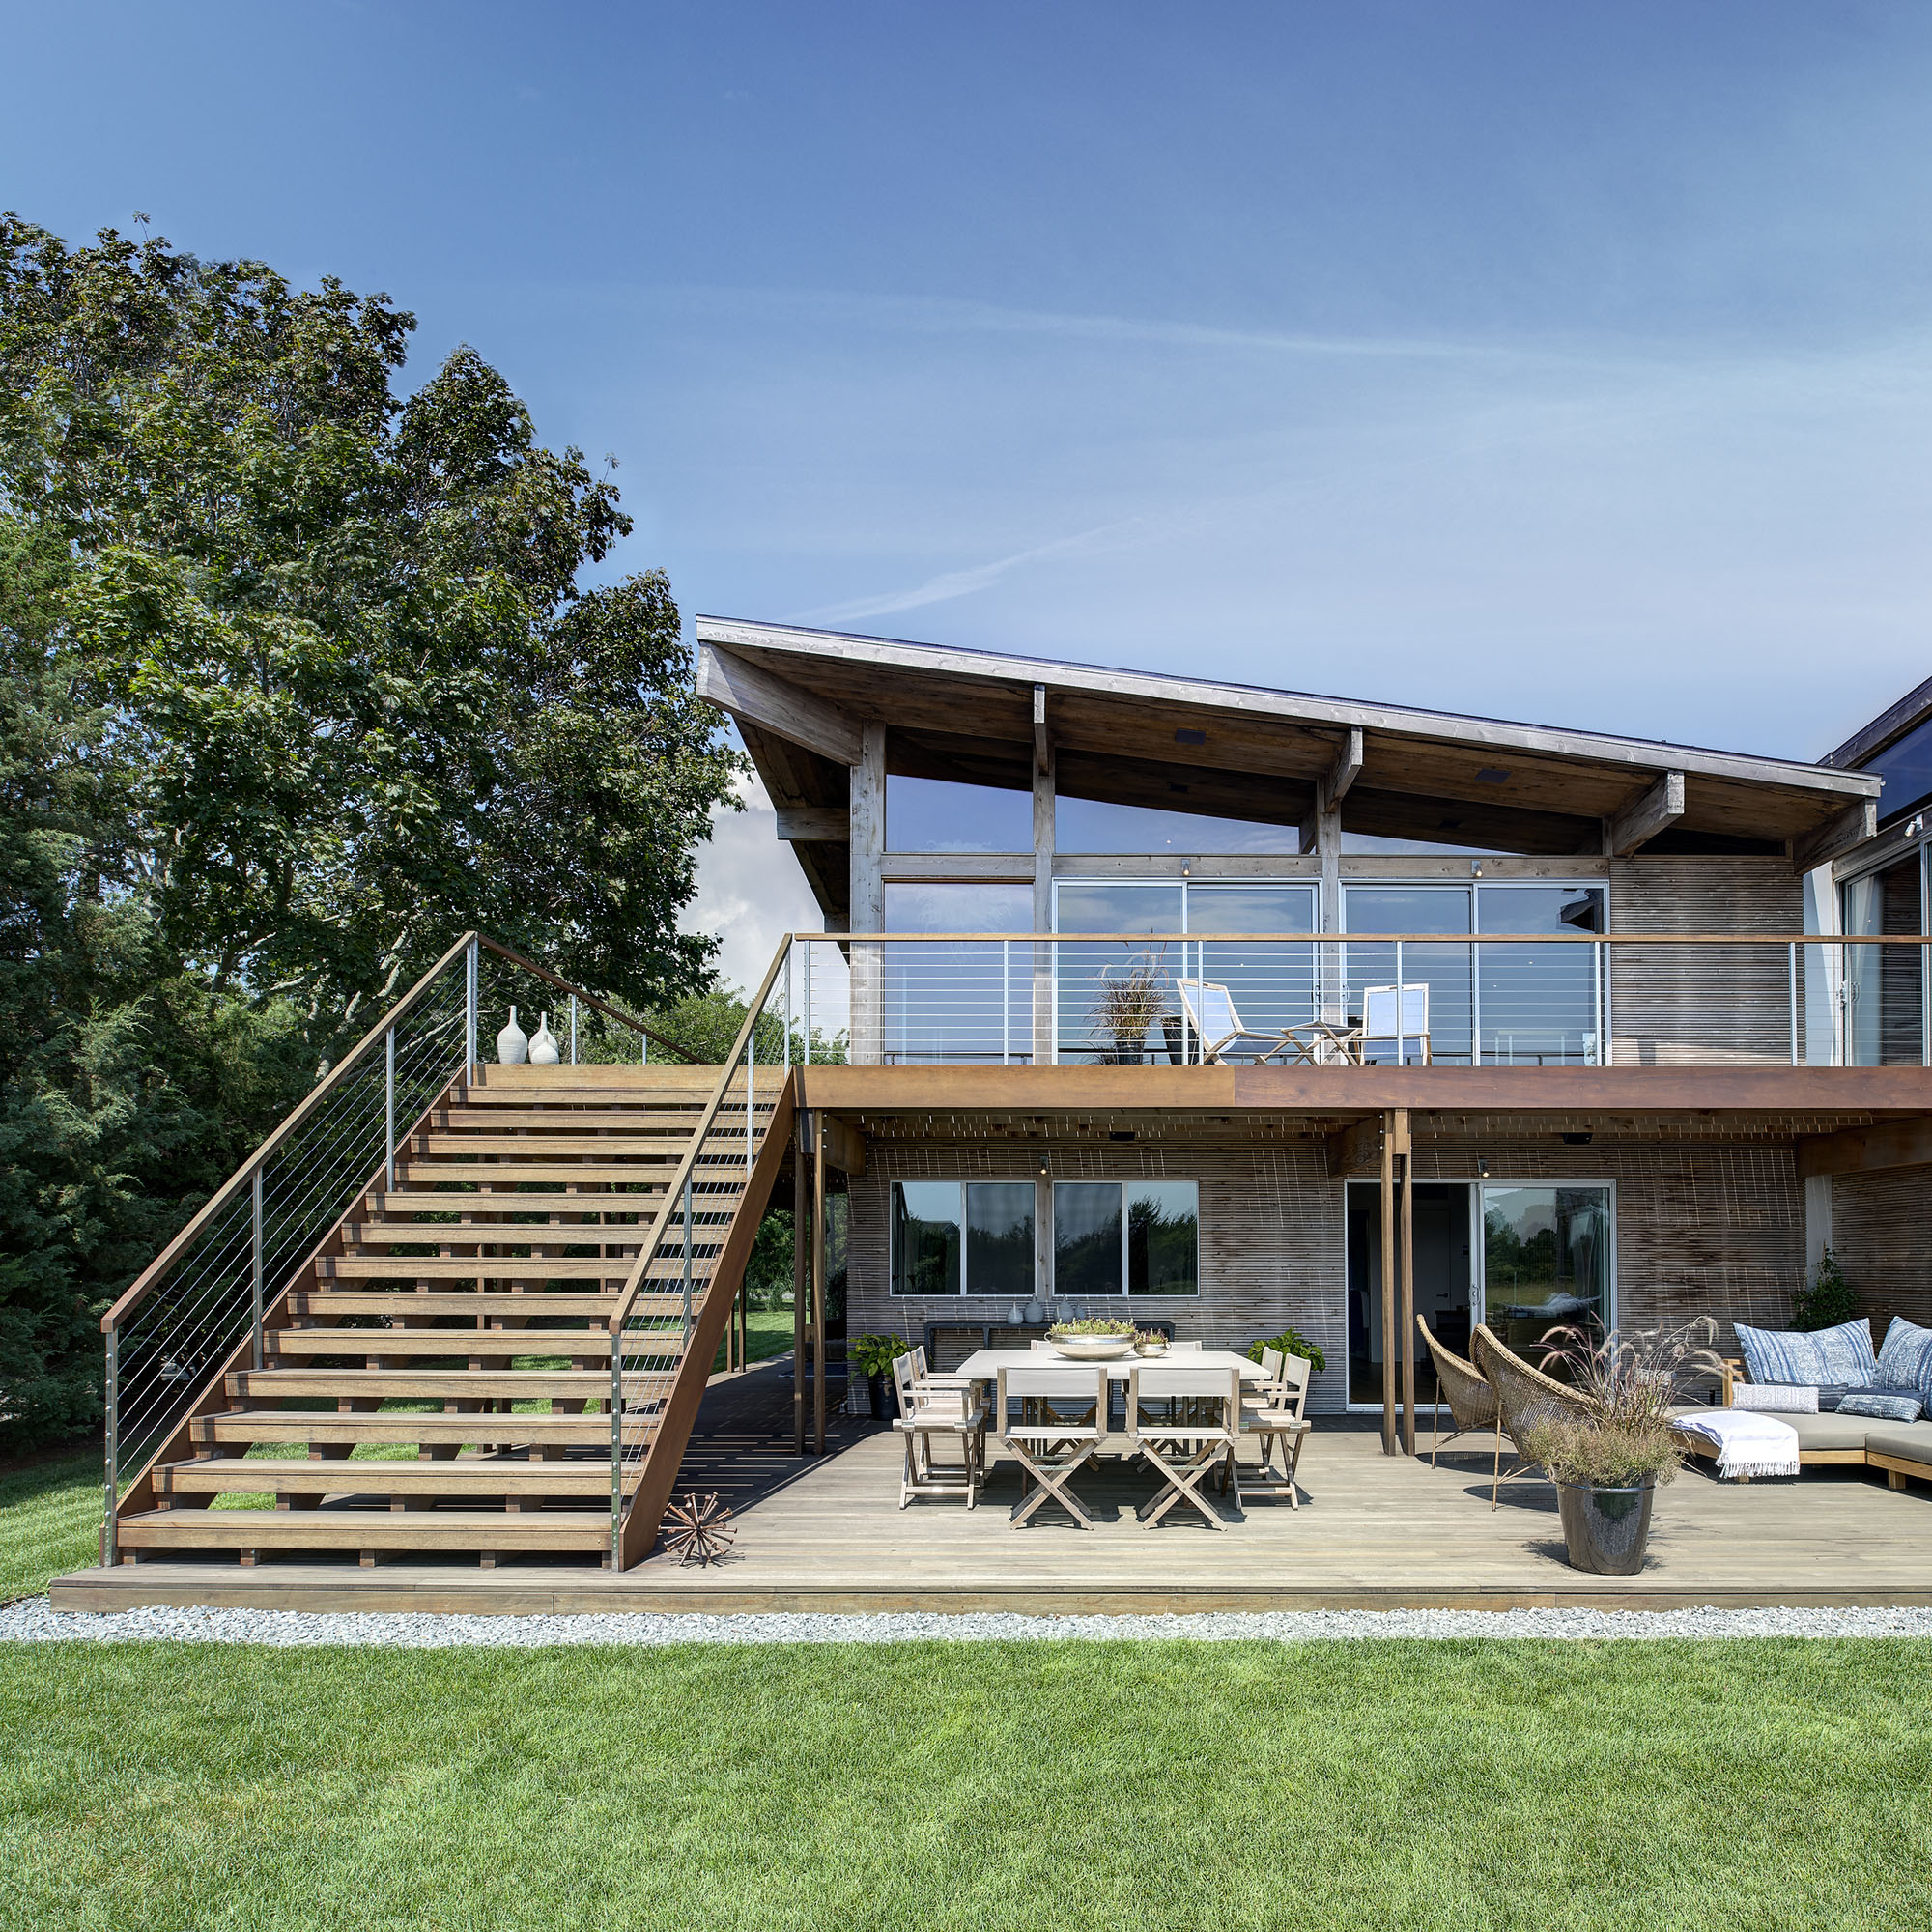 Hurricane-Proof Wood And Steel Waterfront Home On Long